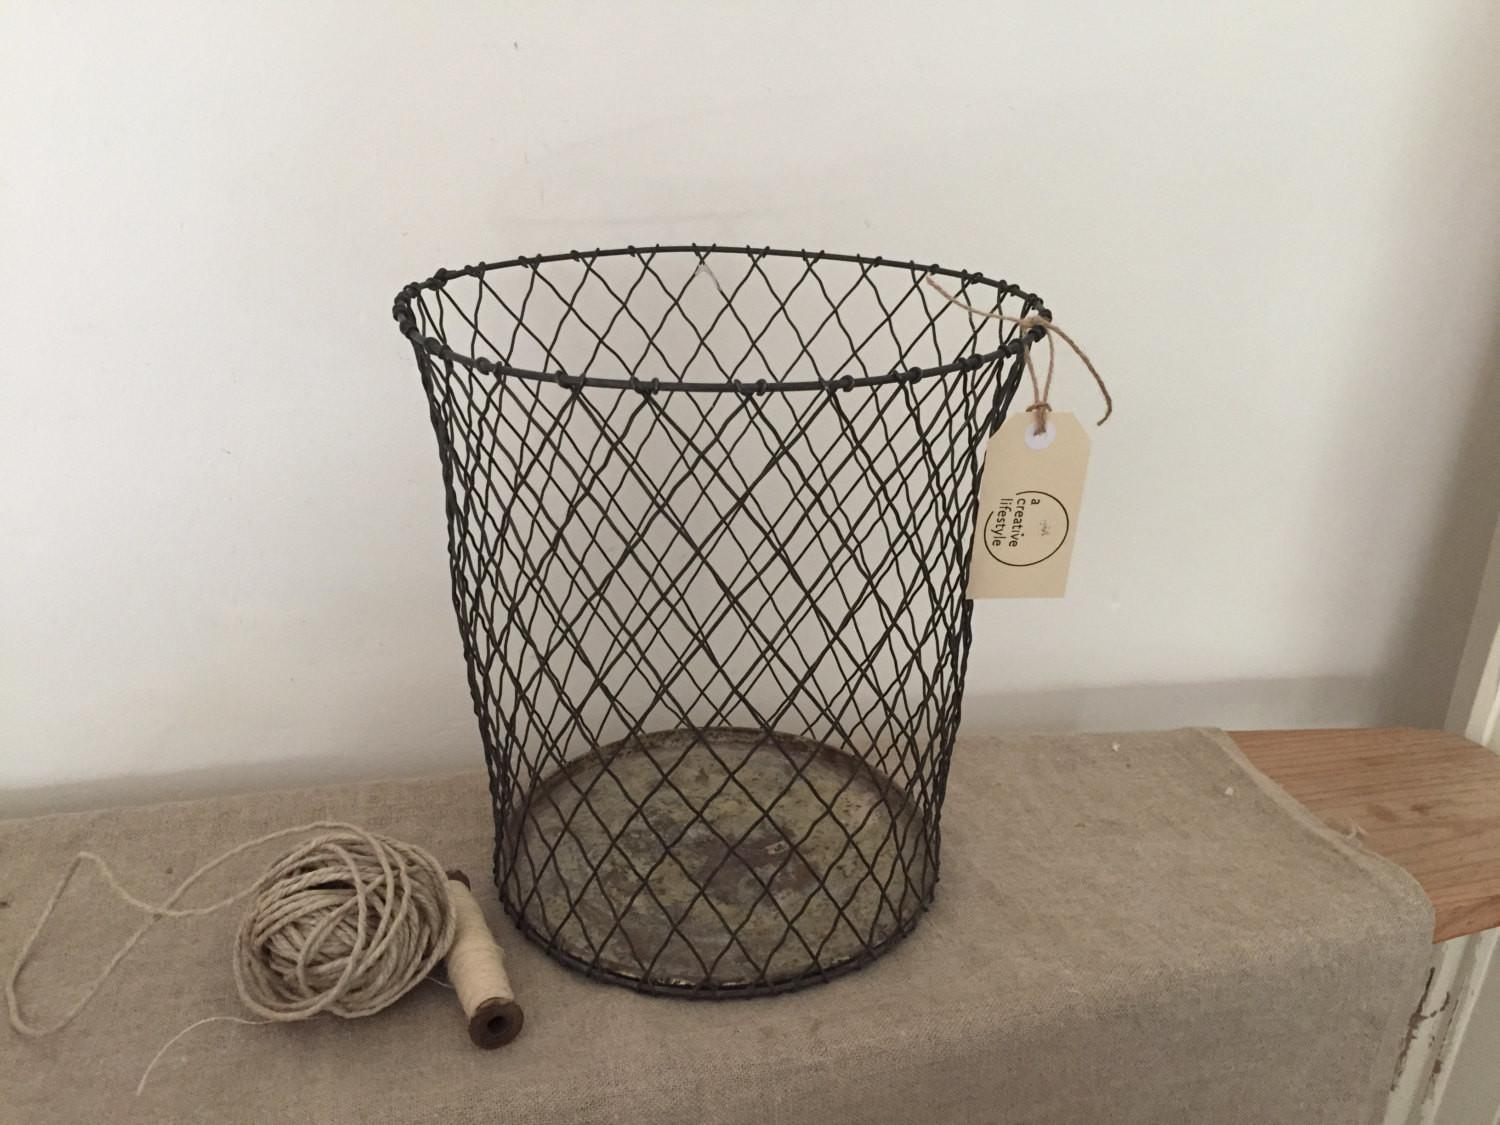 Amazing Rare Vintage Crinkly Wire Basket